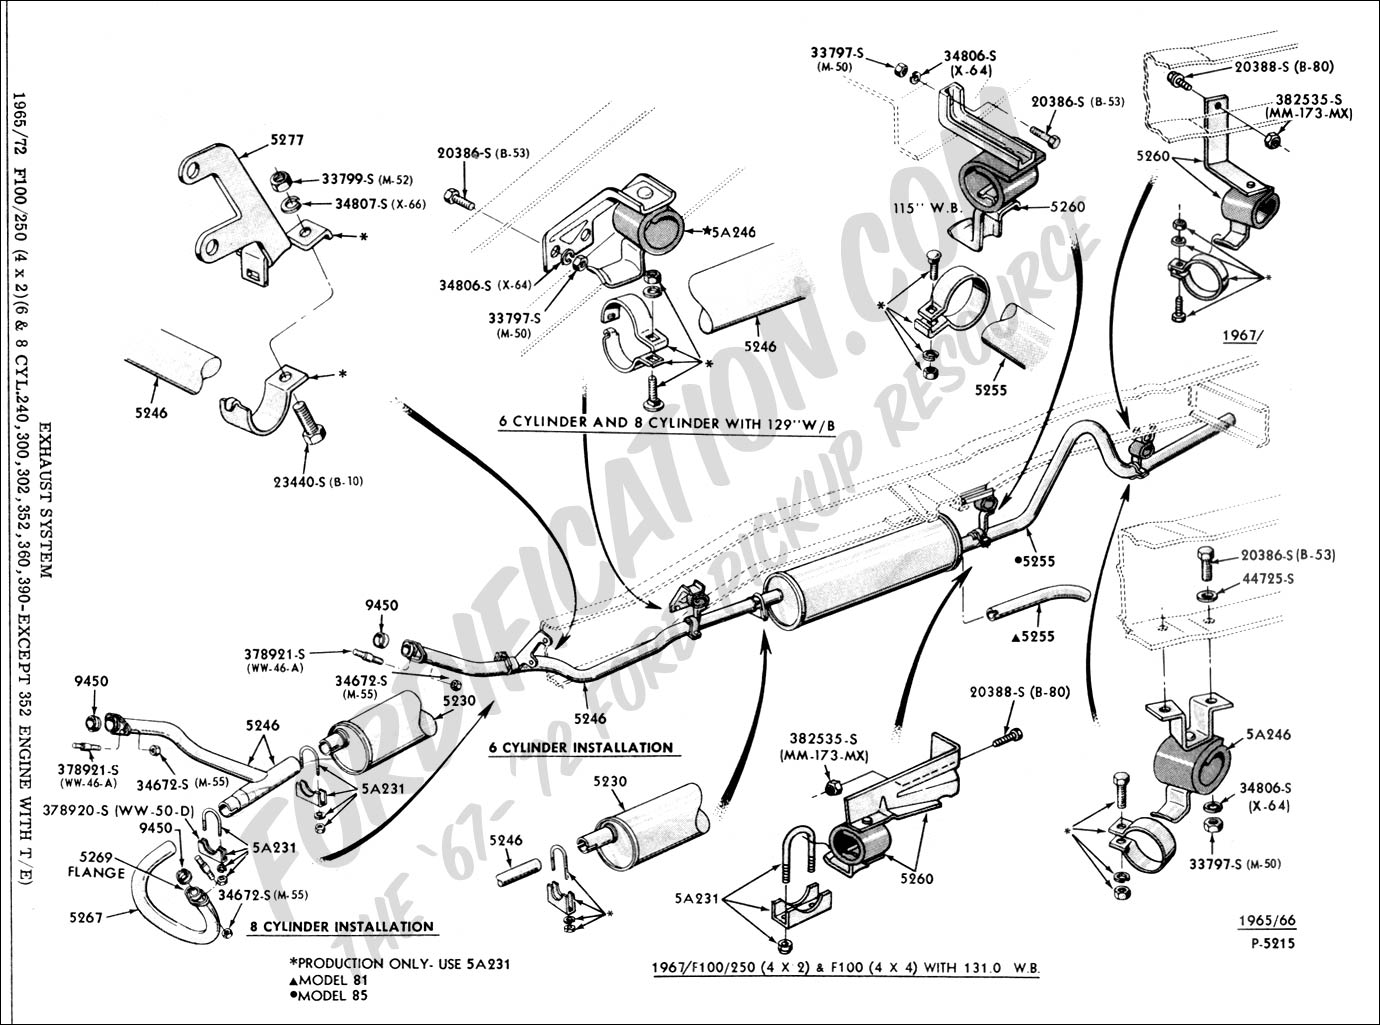 Ford Truck Technical Drawings and Schematics - Section E - Engine ...